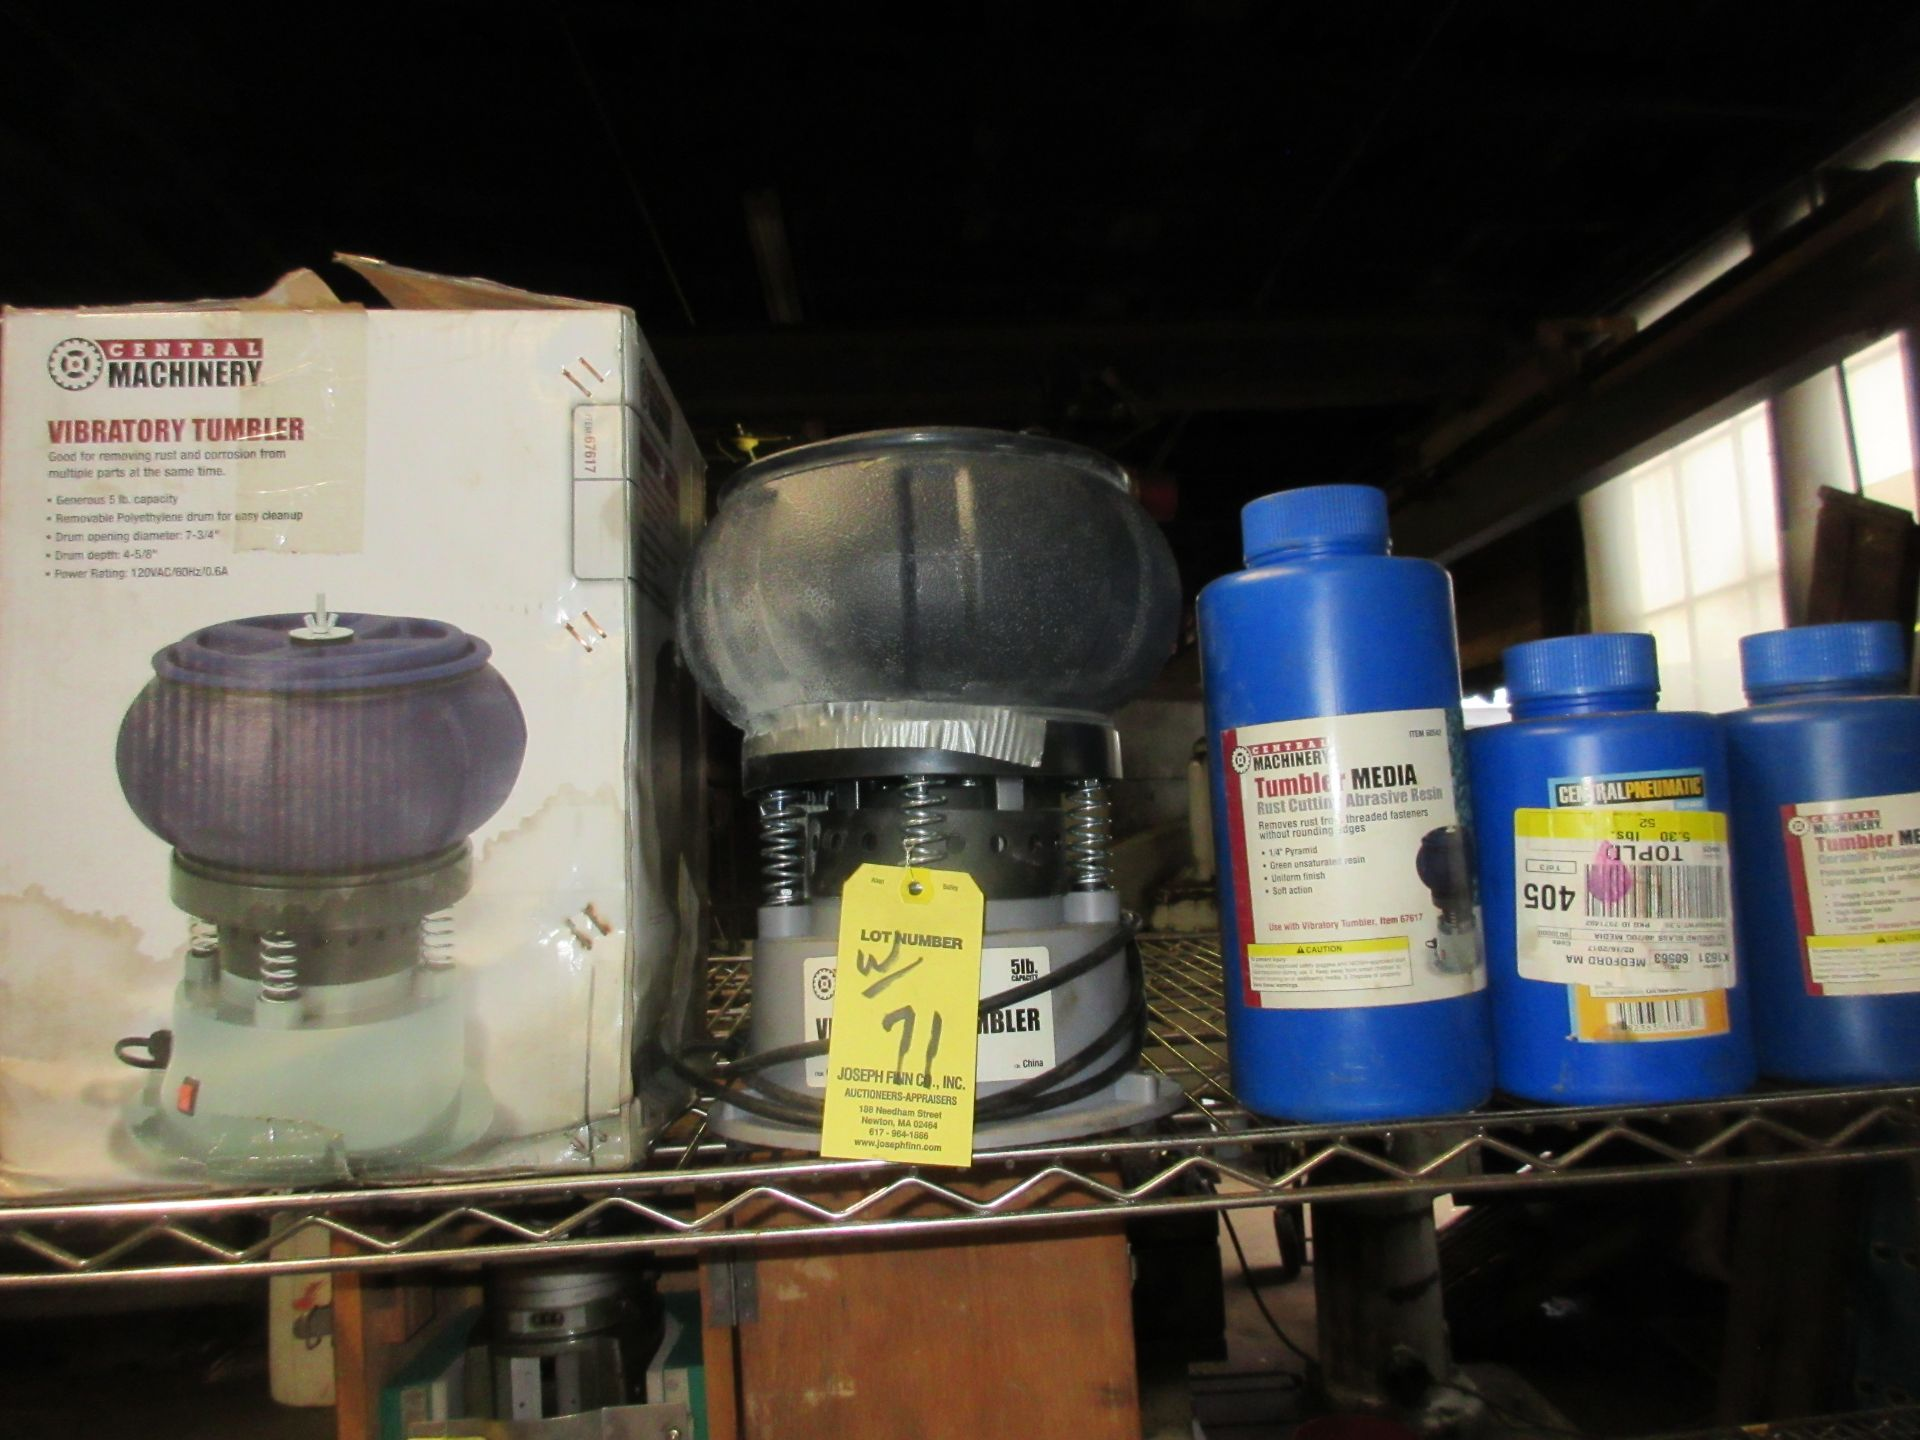 LOT Central Machinery Bench Top Vibratory Tumbler w/ Media, & Bench Top Barrel Tumbler - Image 2 of 2